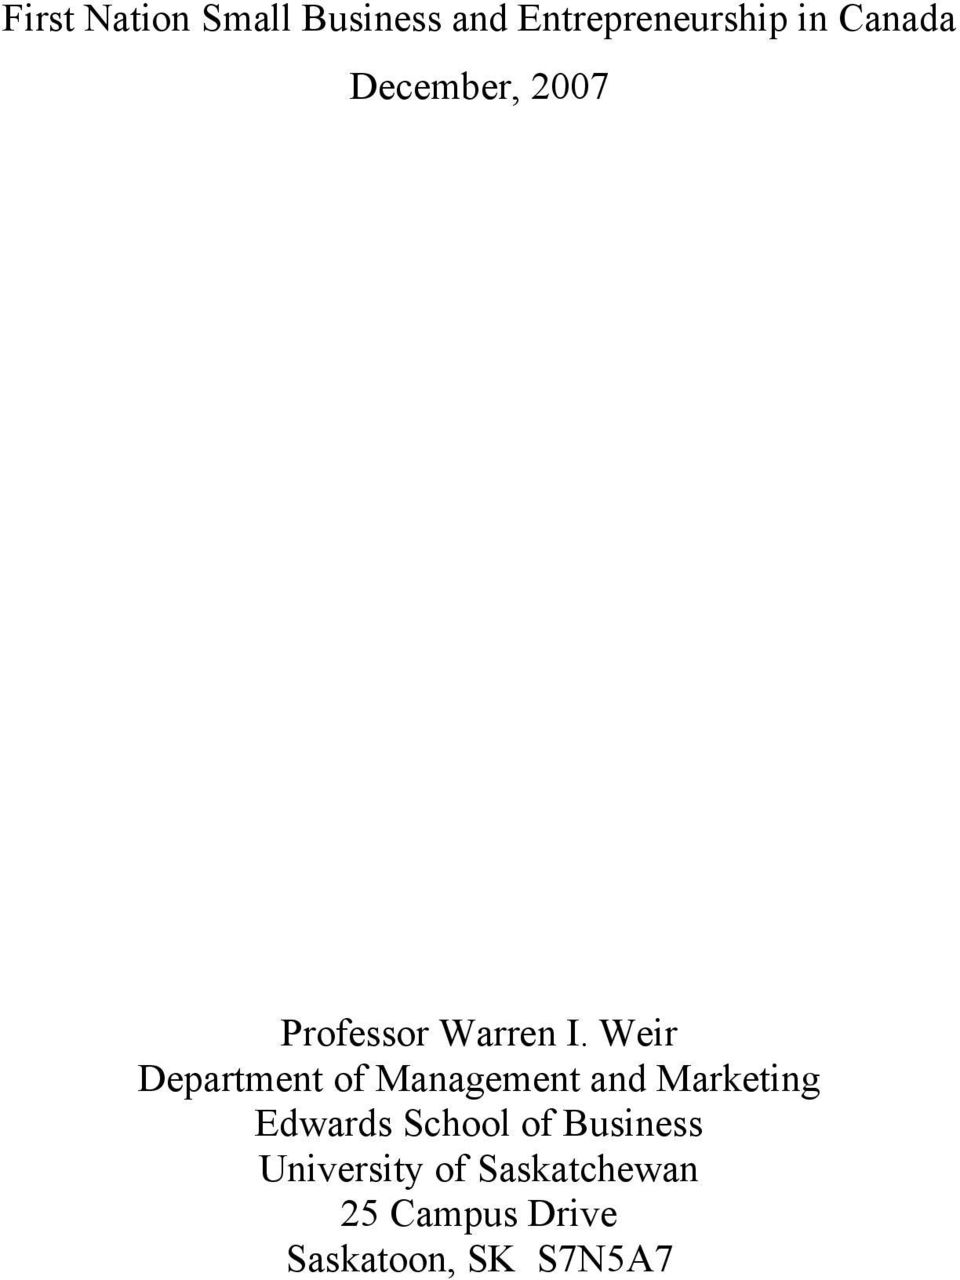 Weir Department of Management and Marketing Edwards